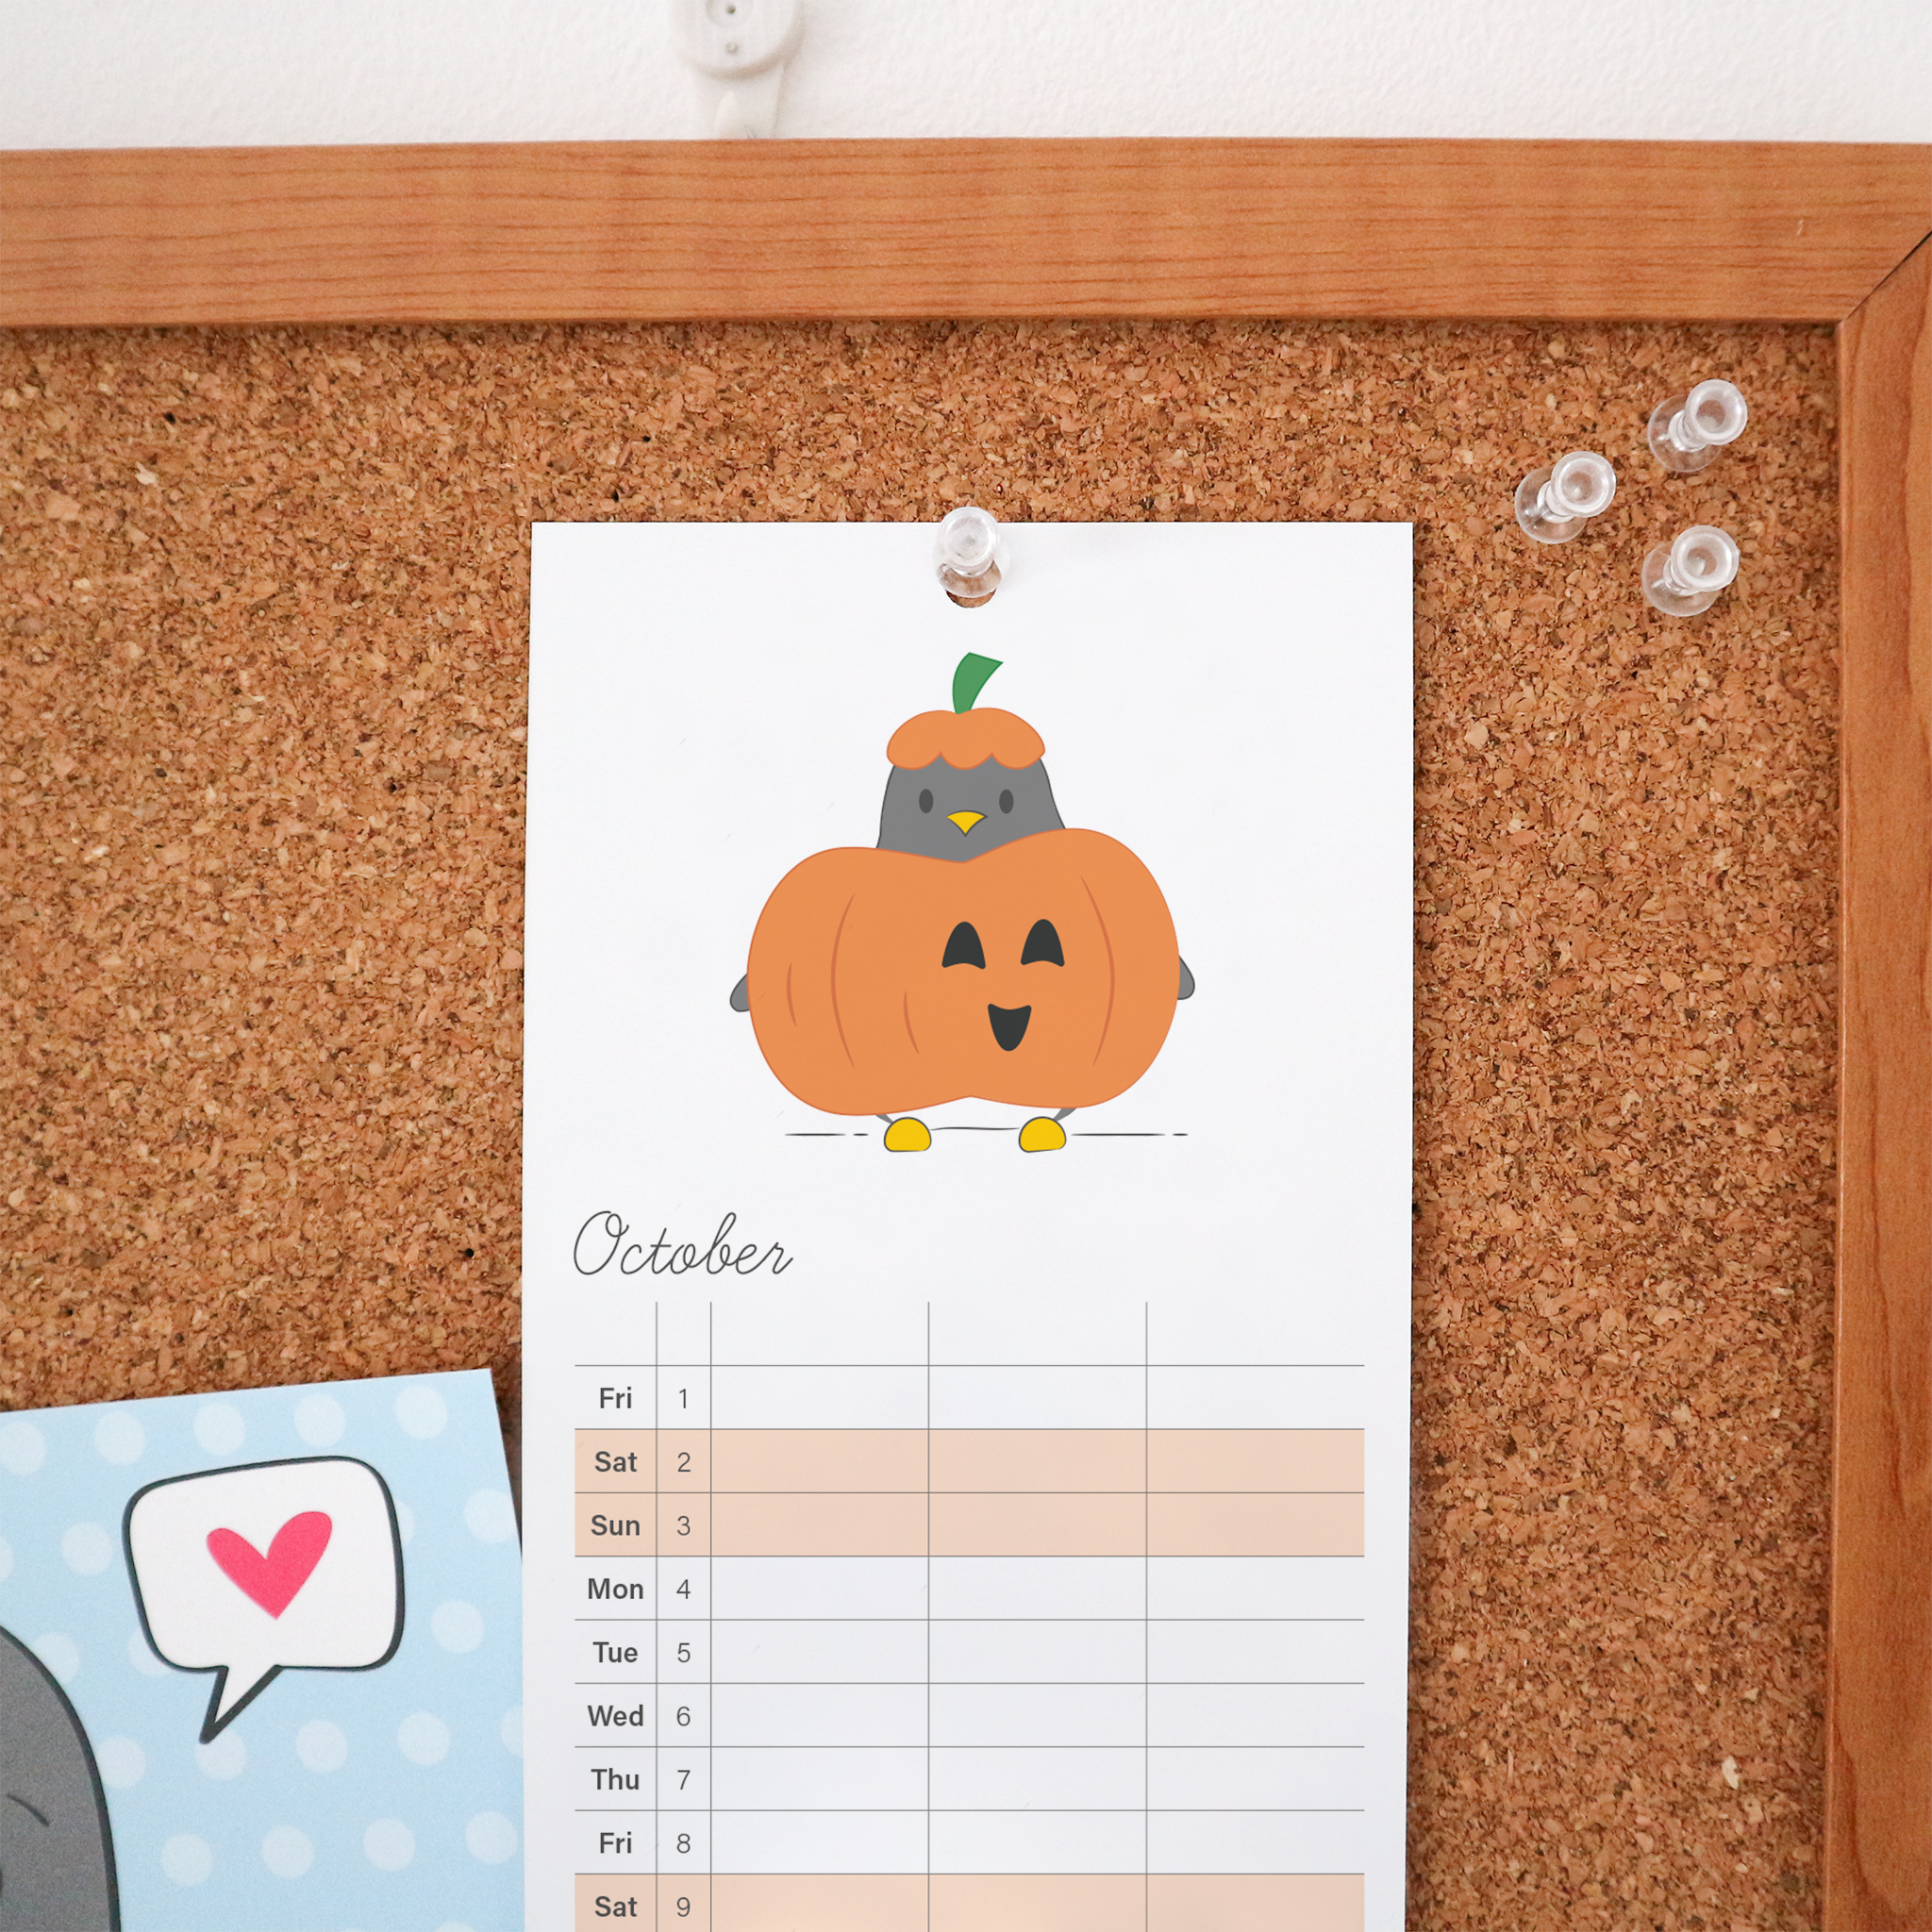 The October page of the calendar is an illustration of Penguin dressed as a pumpkin, he has a smiling orange pumpkin around his middle and is wearing an orange and green hat. This Calendar is a wire bound tall calendar and is styled against a cork board background.